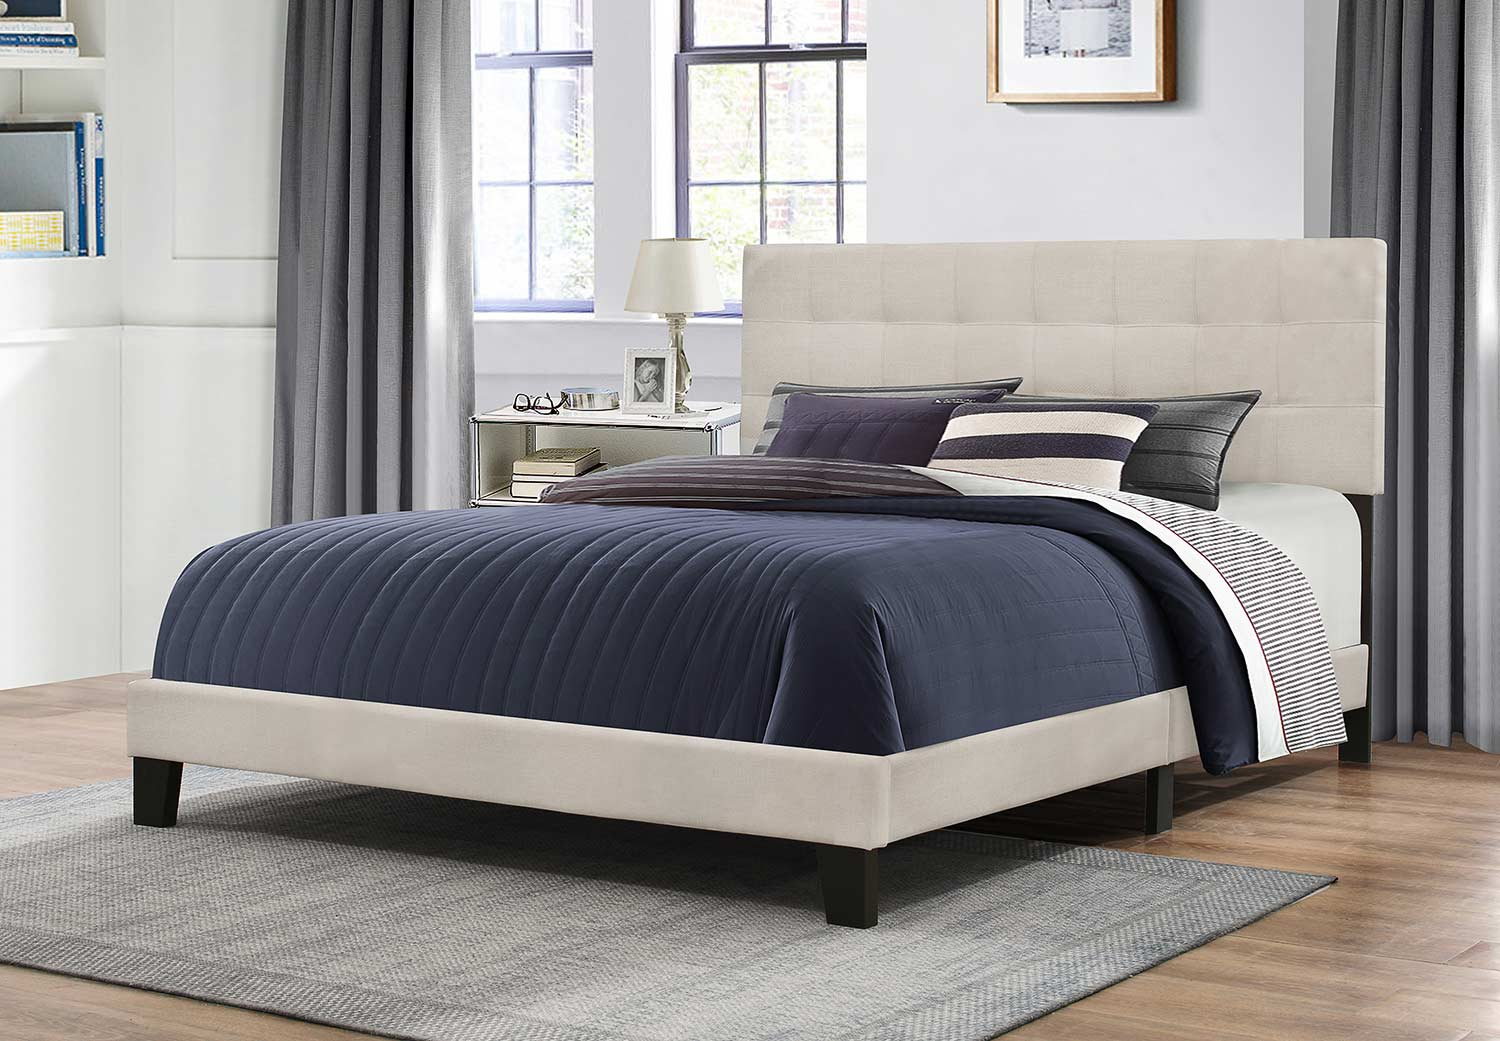 Hillsdale Delaney Bed - Fog Fabric